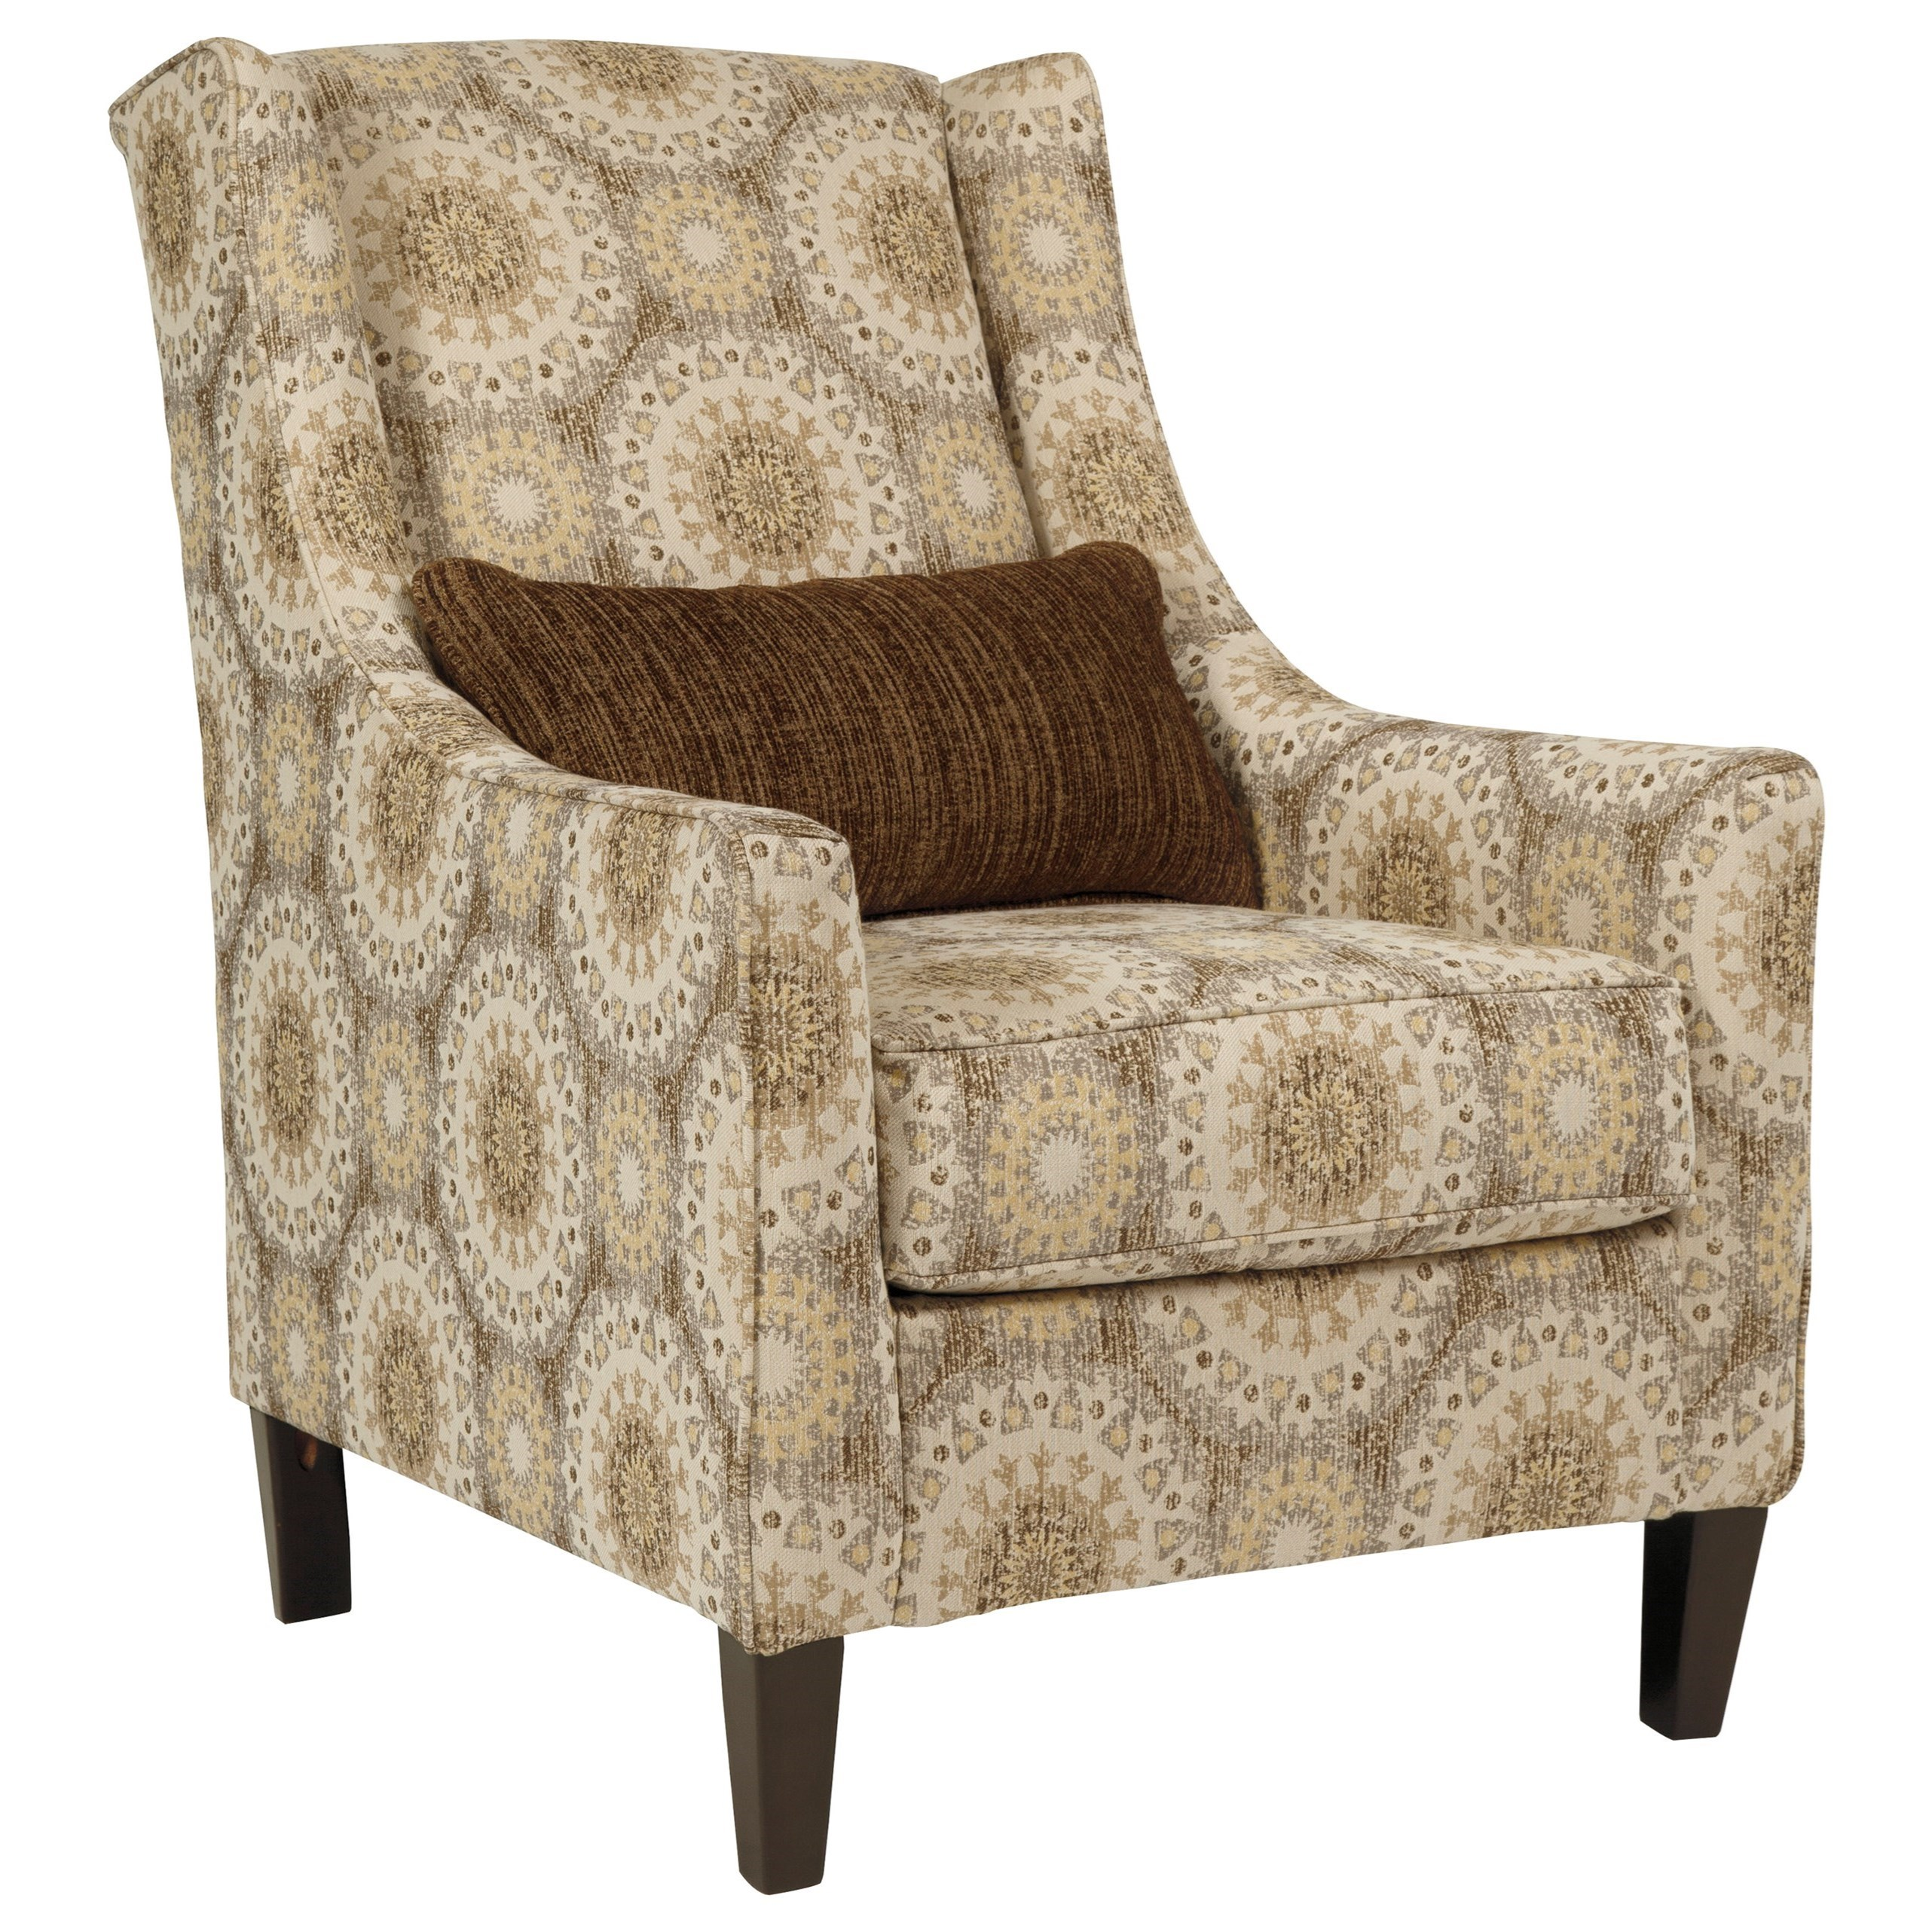 Benchcraft Quarry Hill Accent Chair - Item Number: 3870121